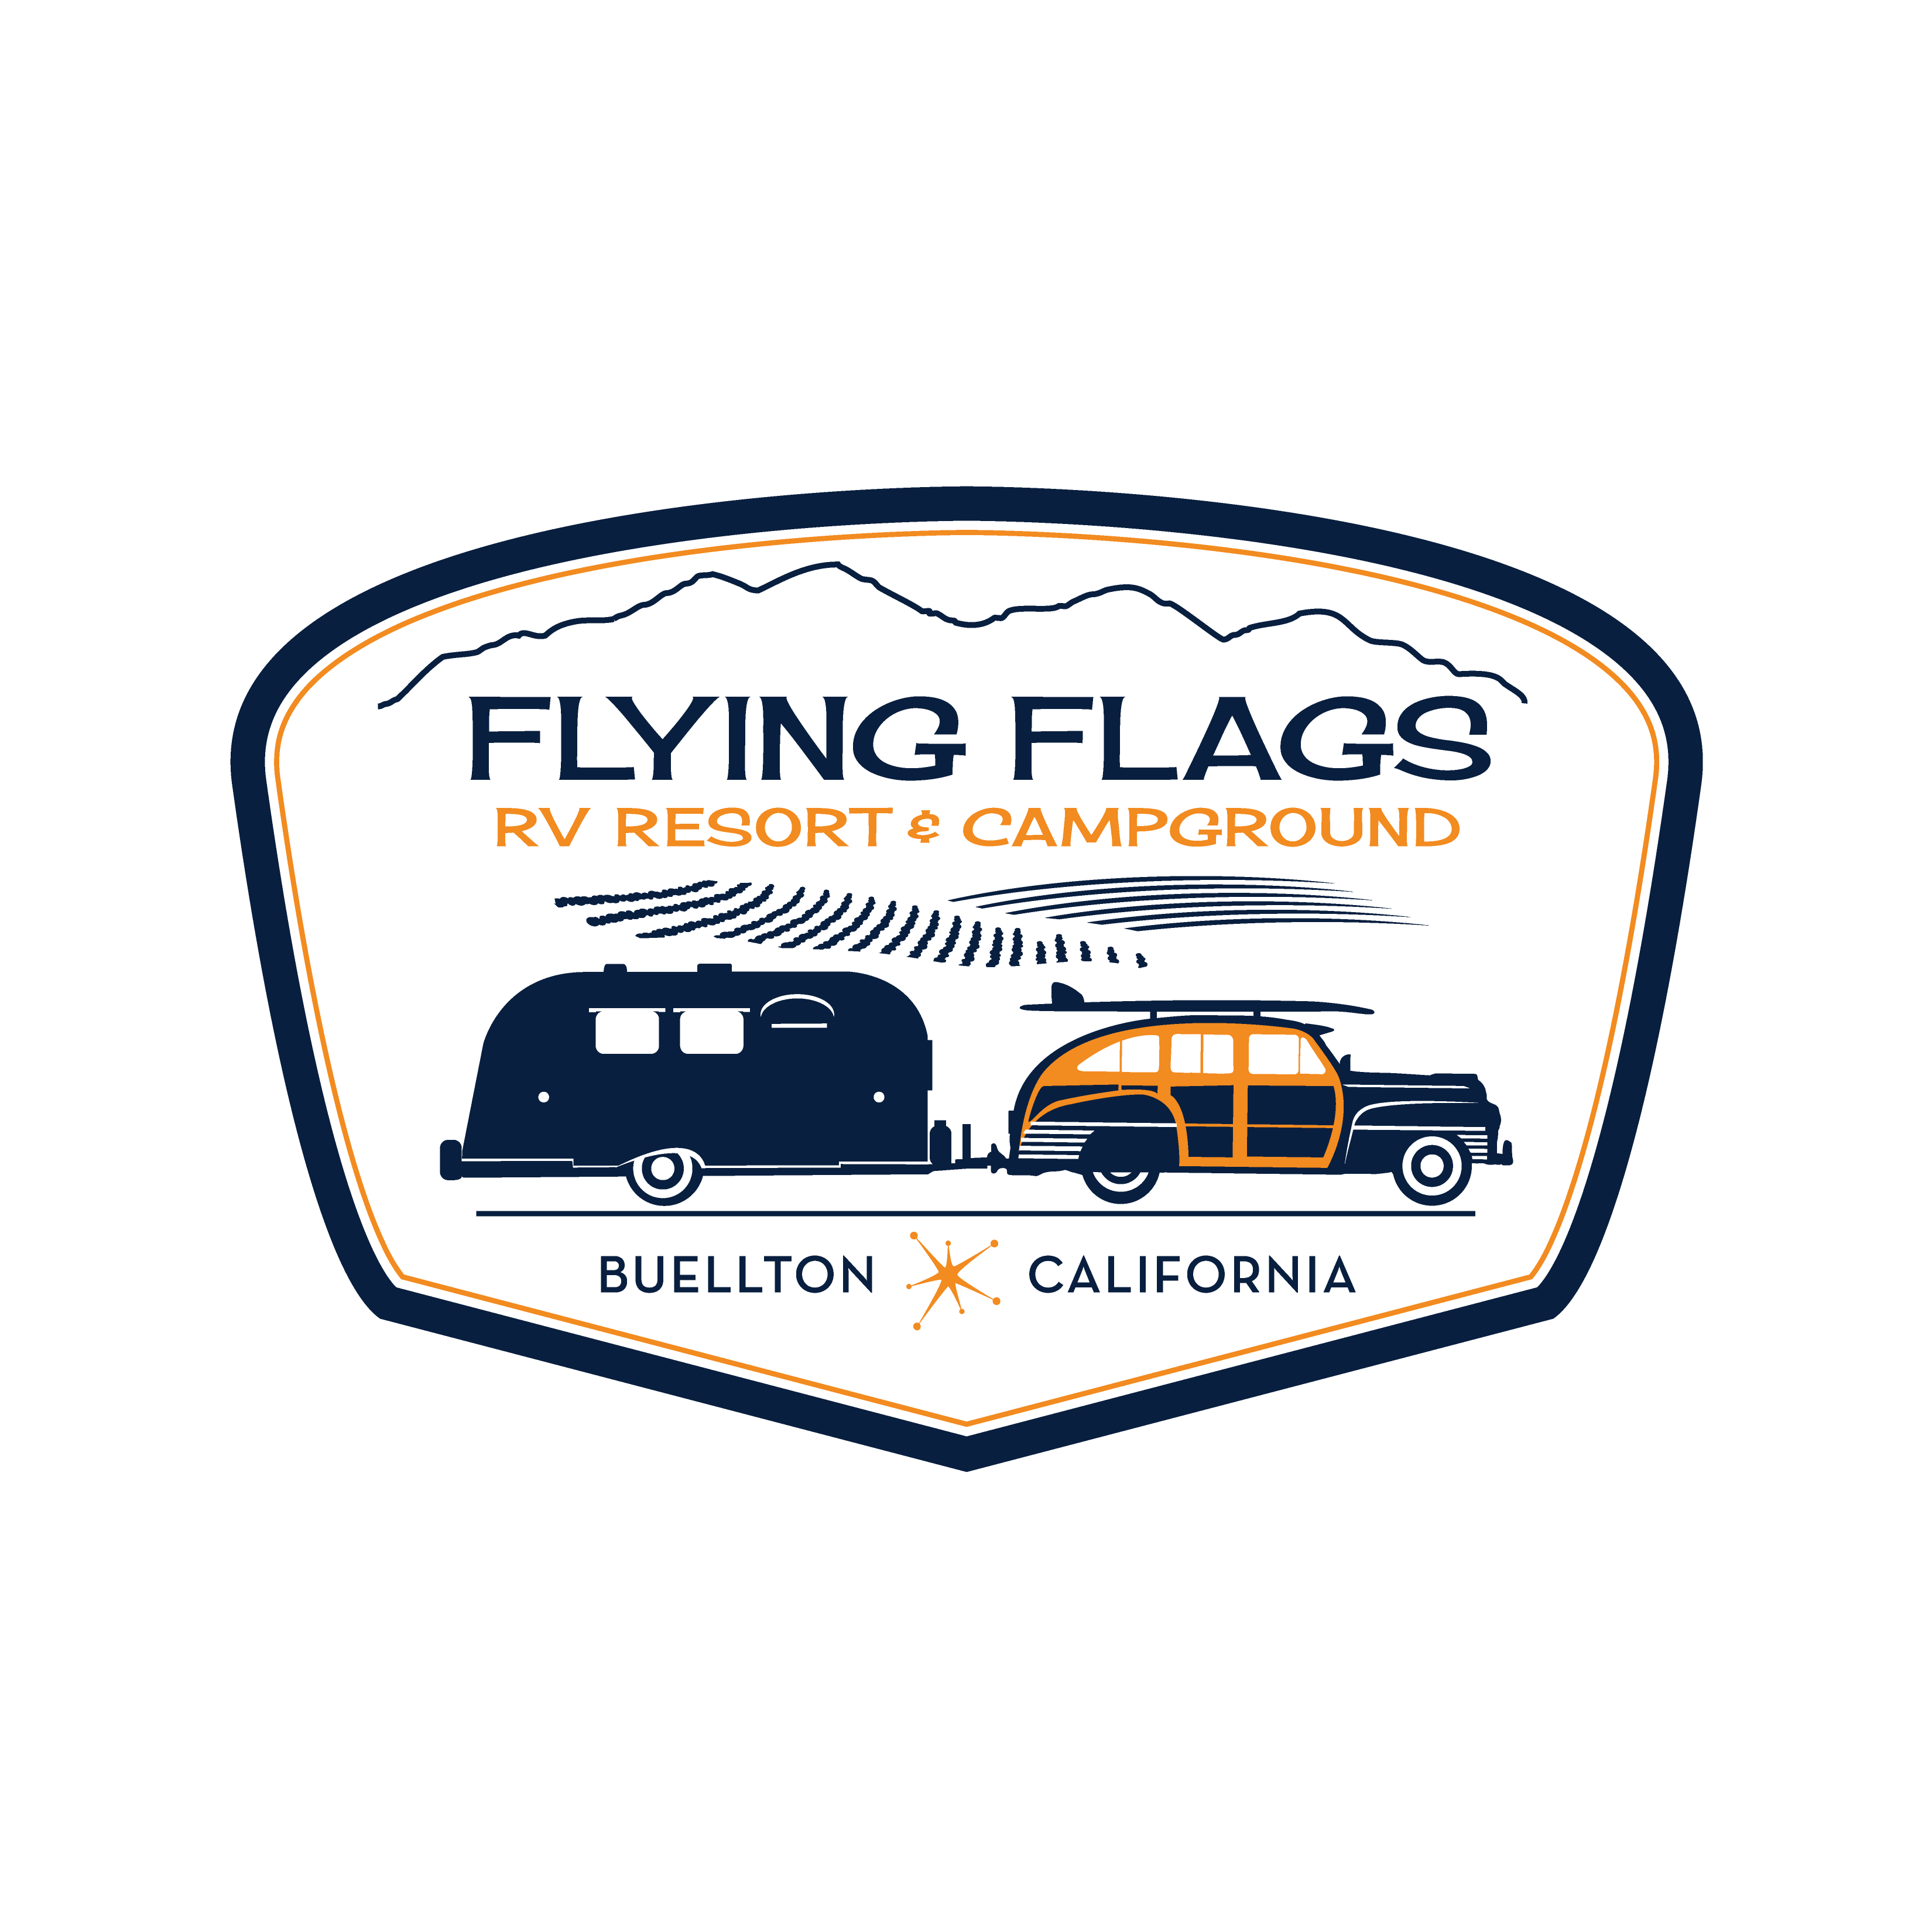 Flying Flags RV Resort & Campground image 39